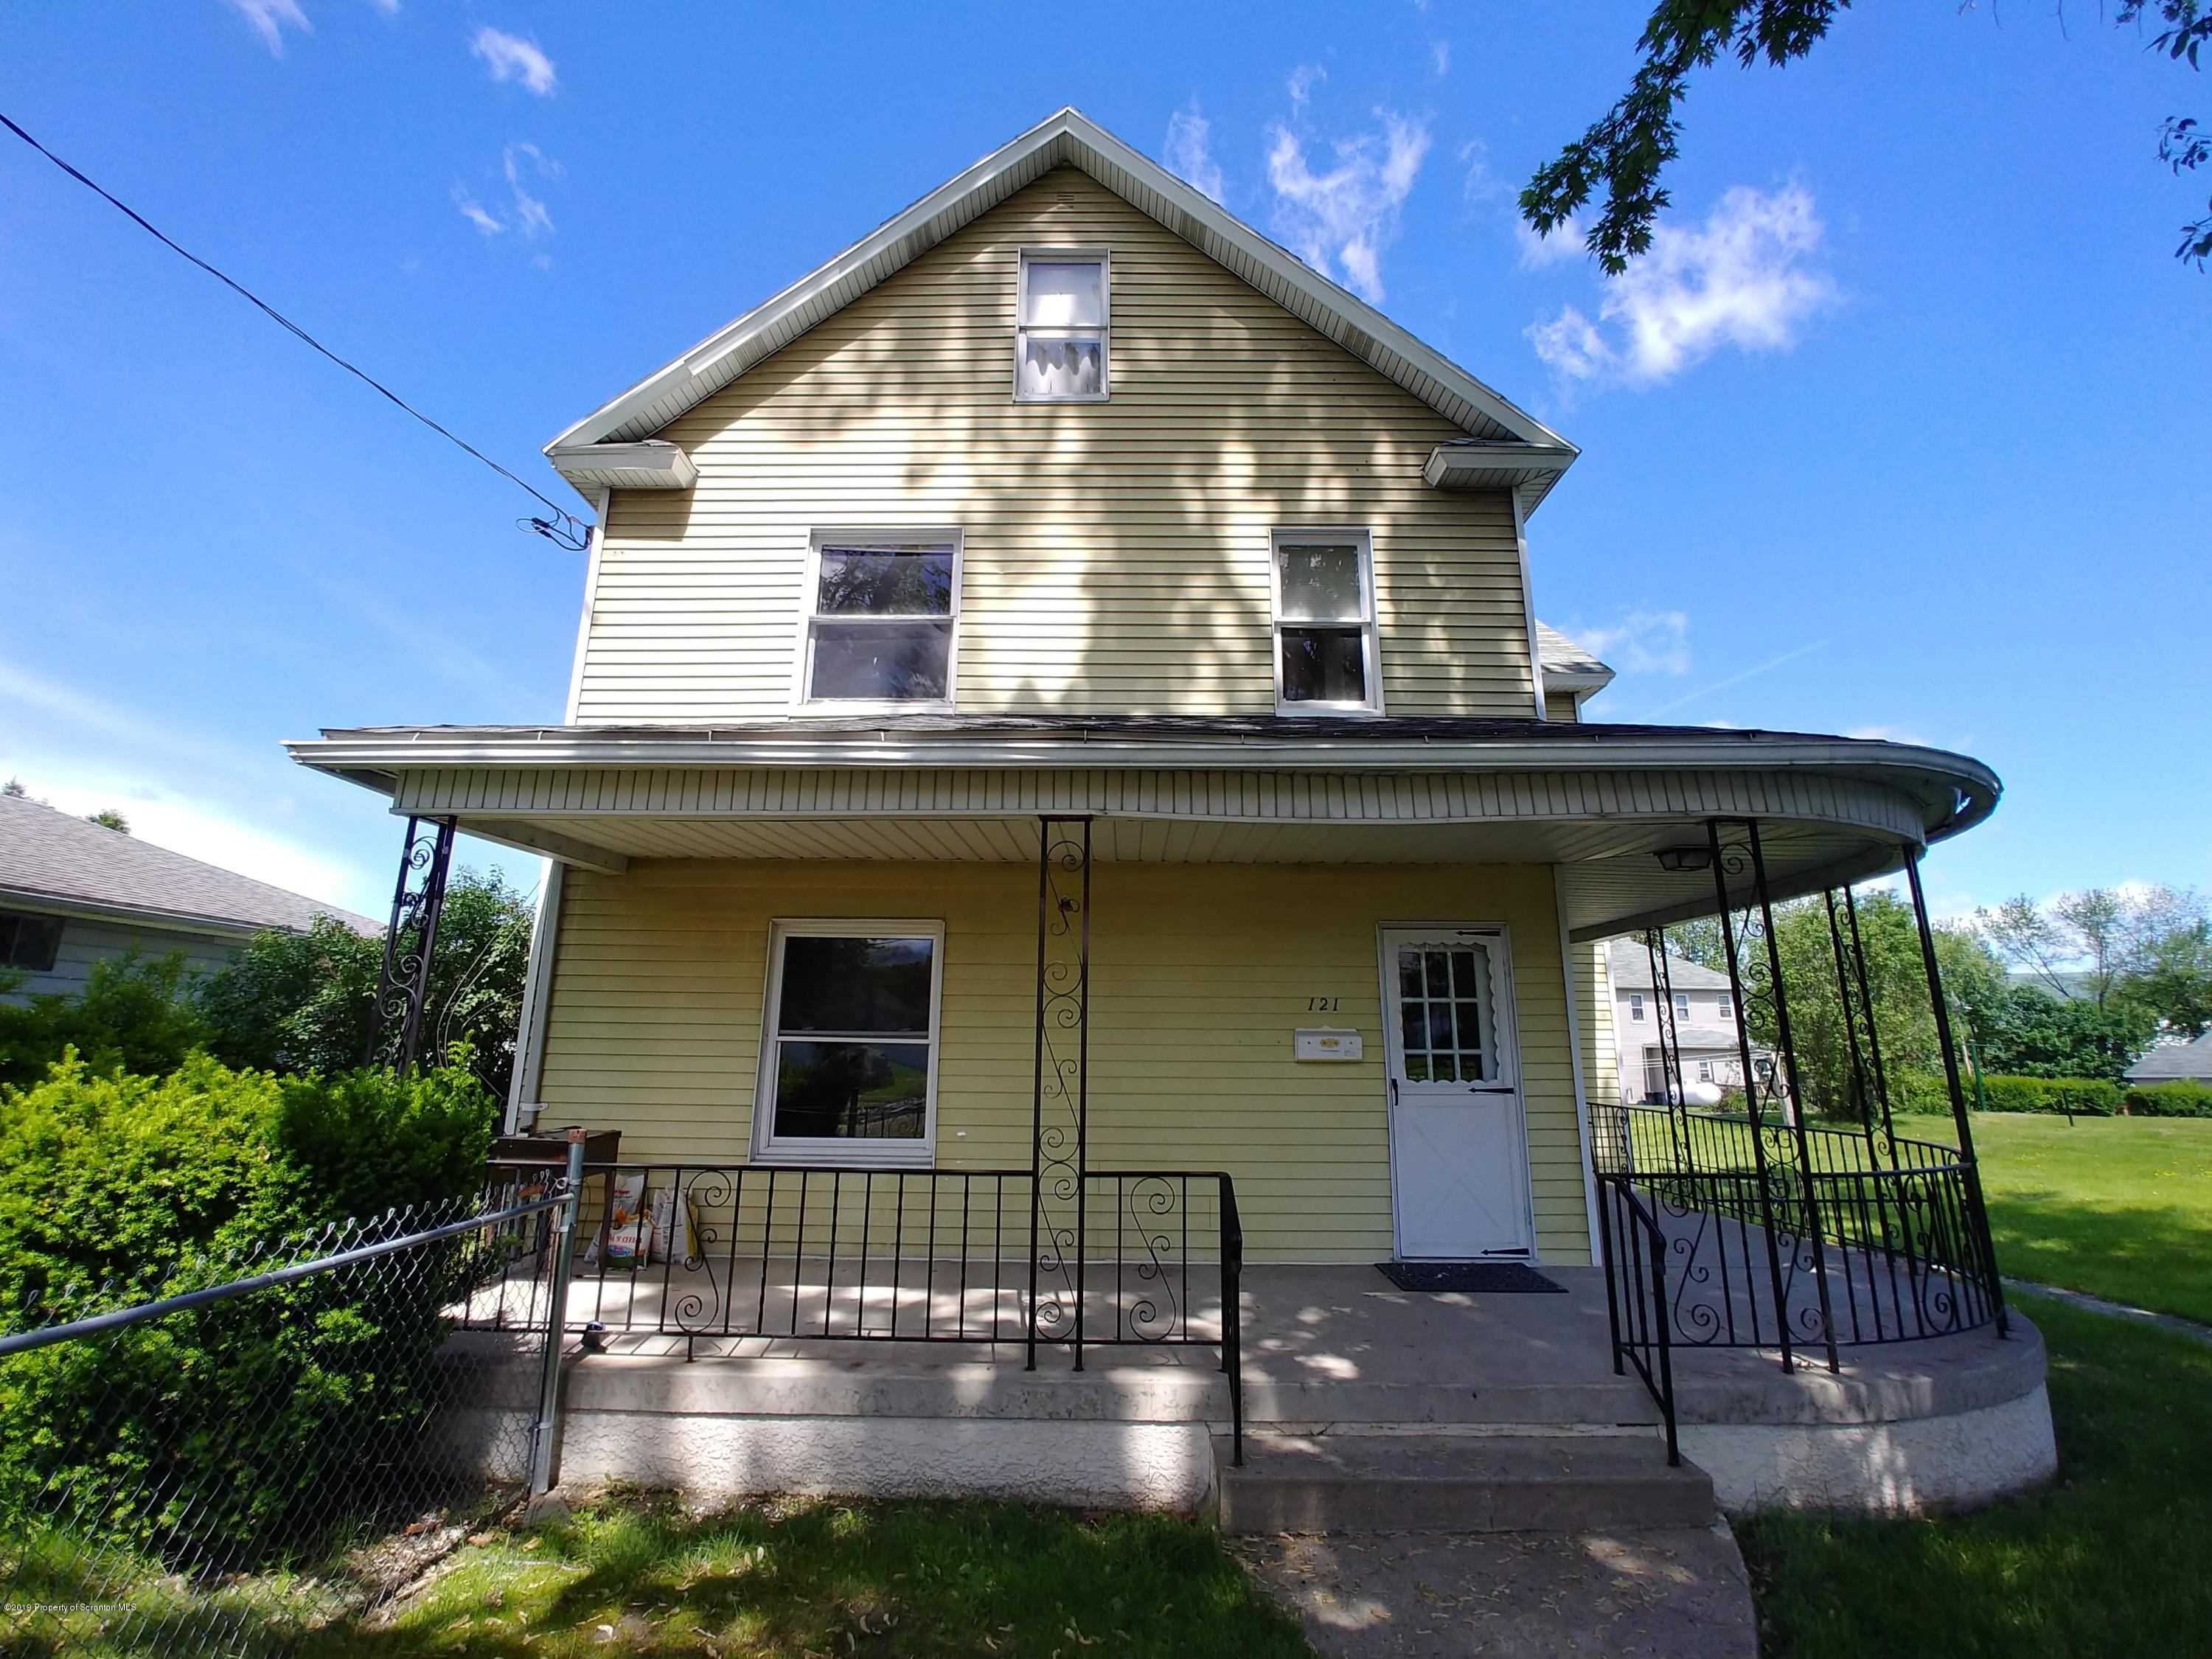 121 Wagner St, Moosic, Pennsylvania 18507, 3 Bedrooms Bedrooms, 7 Rooms Rooms,2 BathroomsBathrooms,Single Family,For Sale,Wagner,19-2393